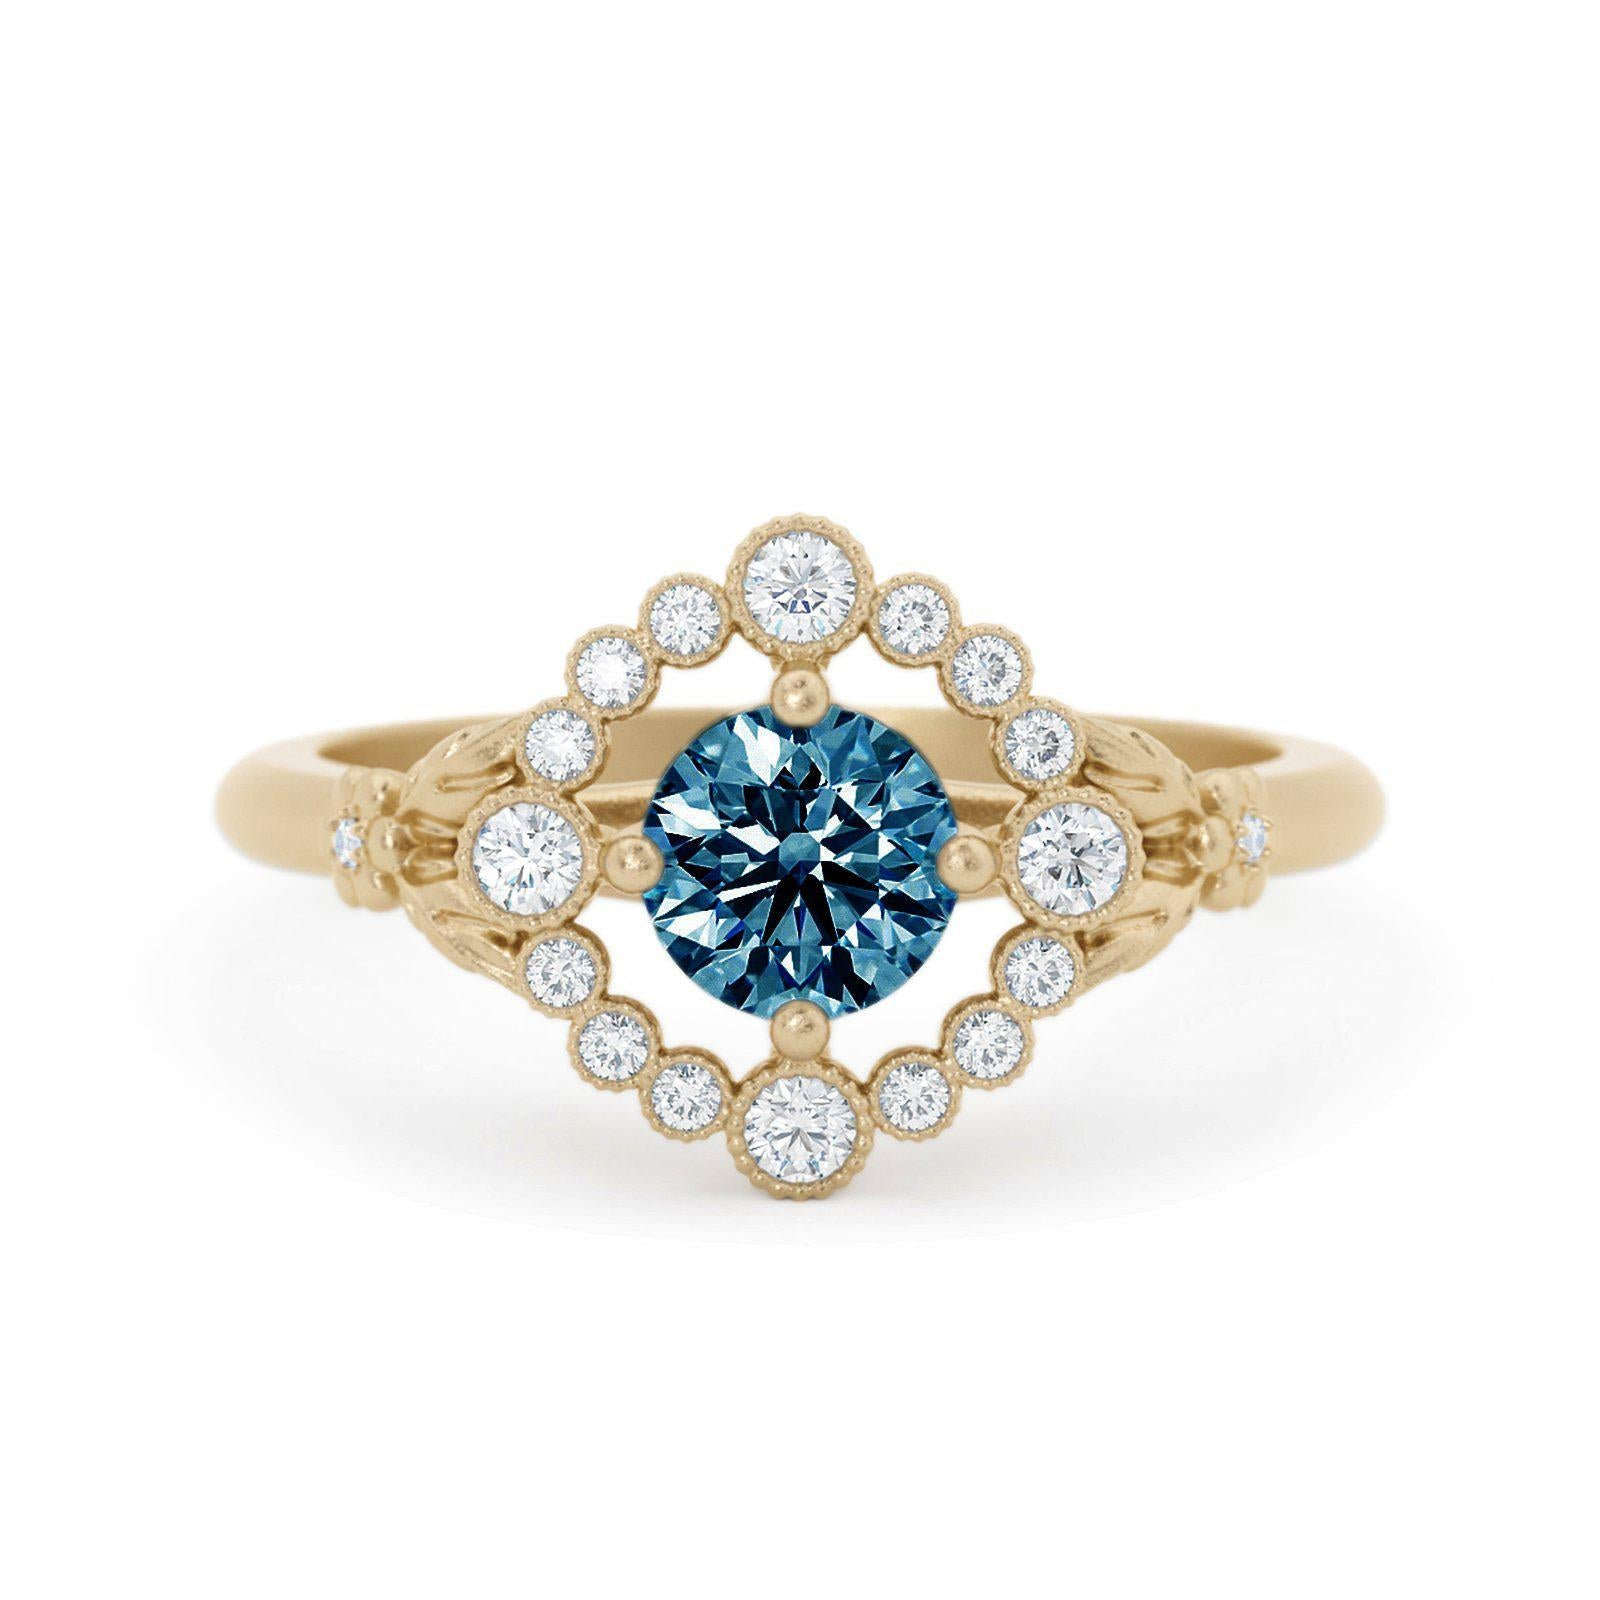 Scarlett Montana Sapphire Ring with Diamond Halo